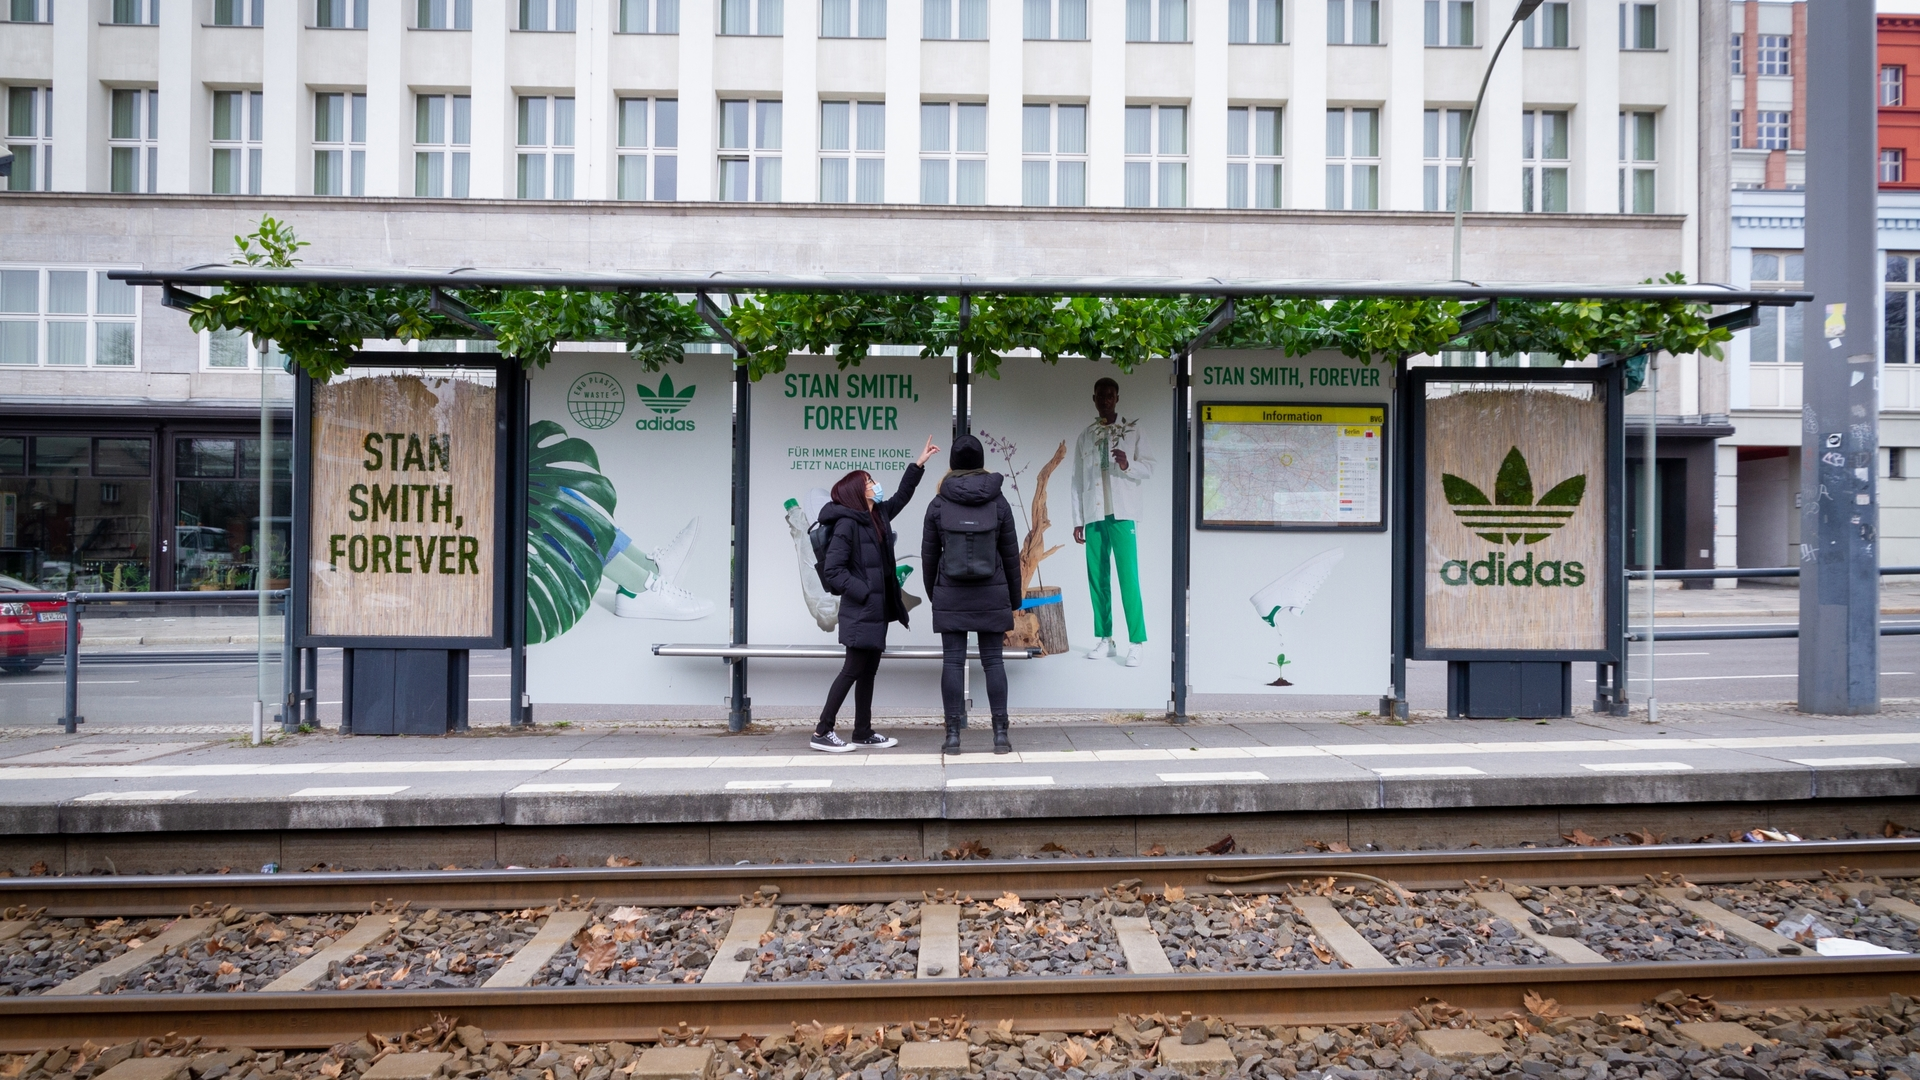 Graffiti with moss: the sustainable way to advertise